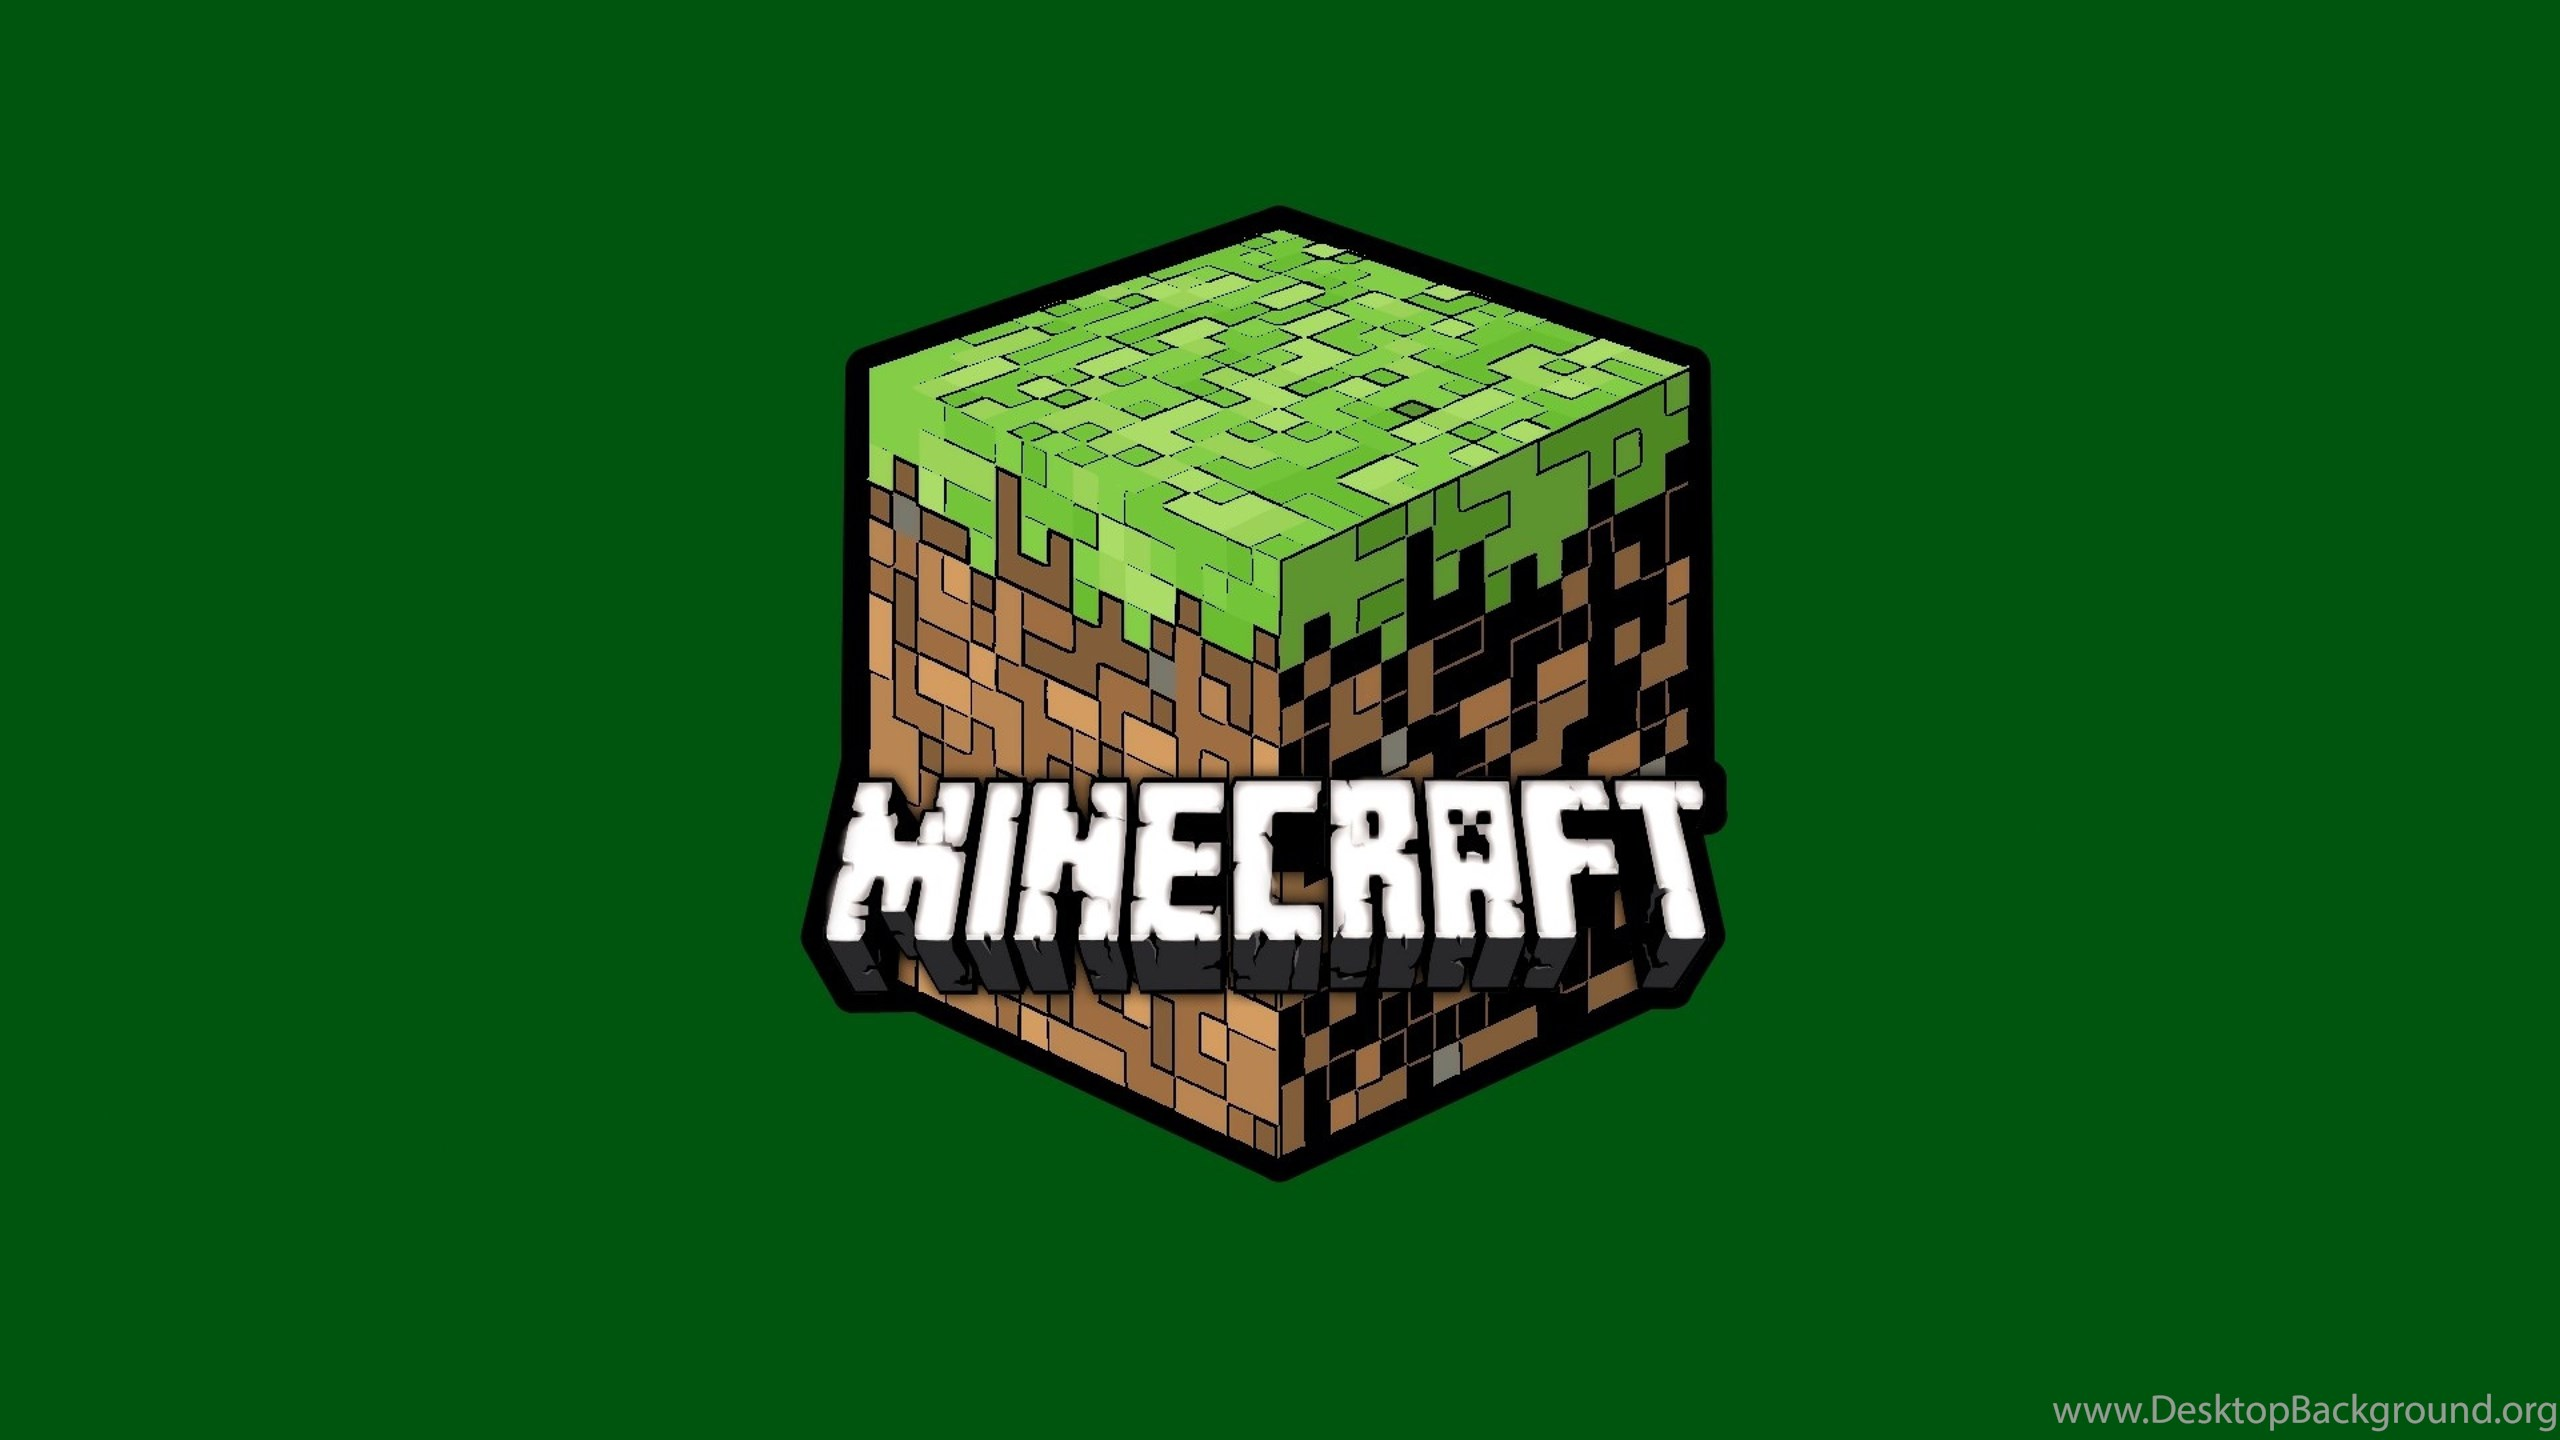 Download Wallpaper Minecraft 1080p - 851839_minecraft-wallpapers-1080p-wallpapers_3840x2160_h  Picture_976765.jpg